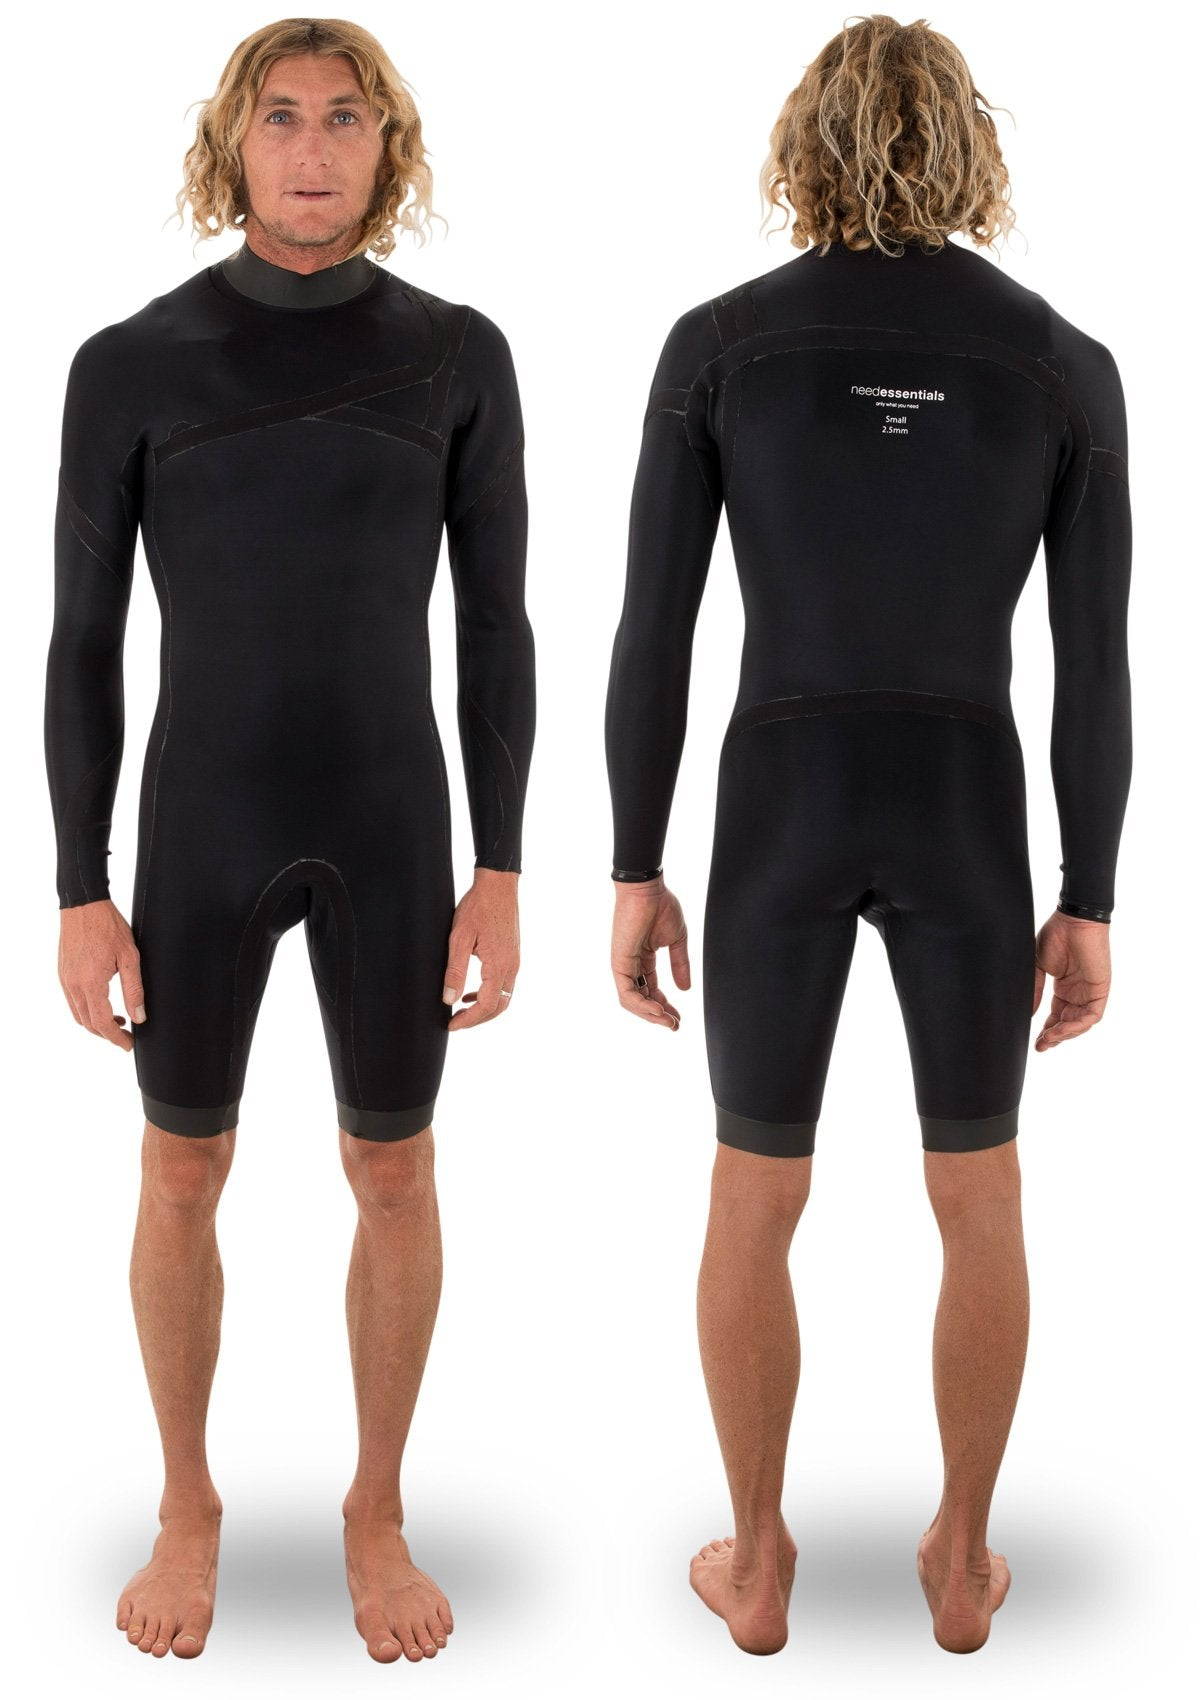 needessentials Long Arm Spring suit surfing summer